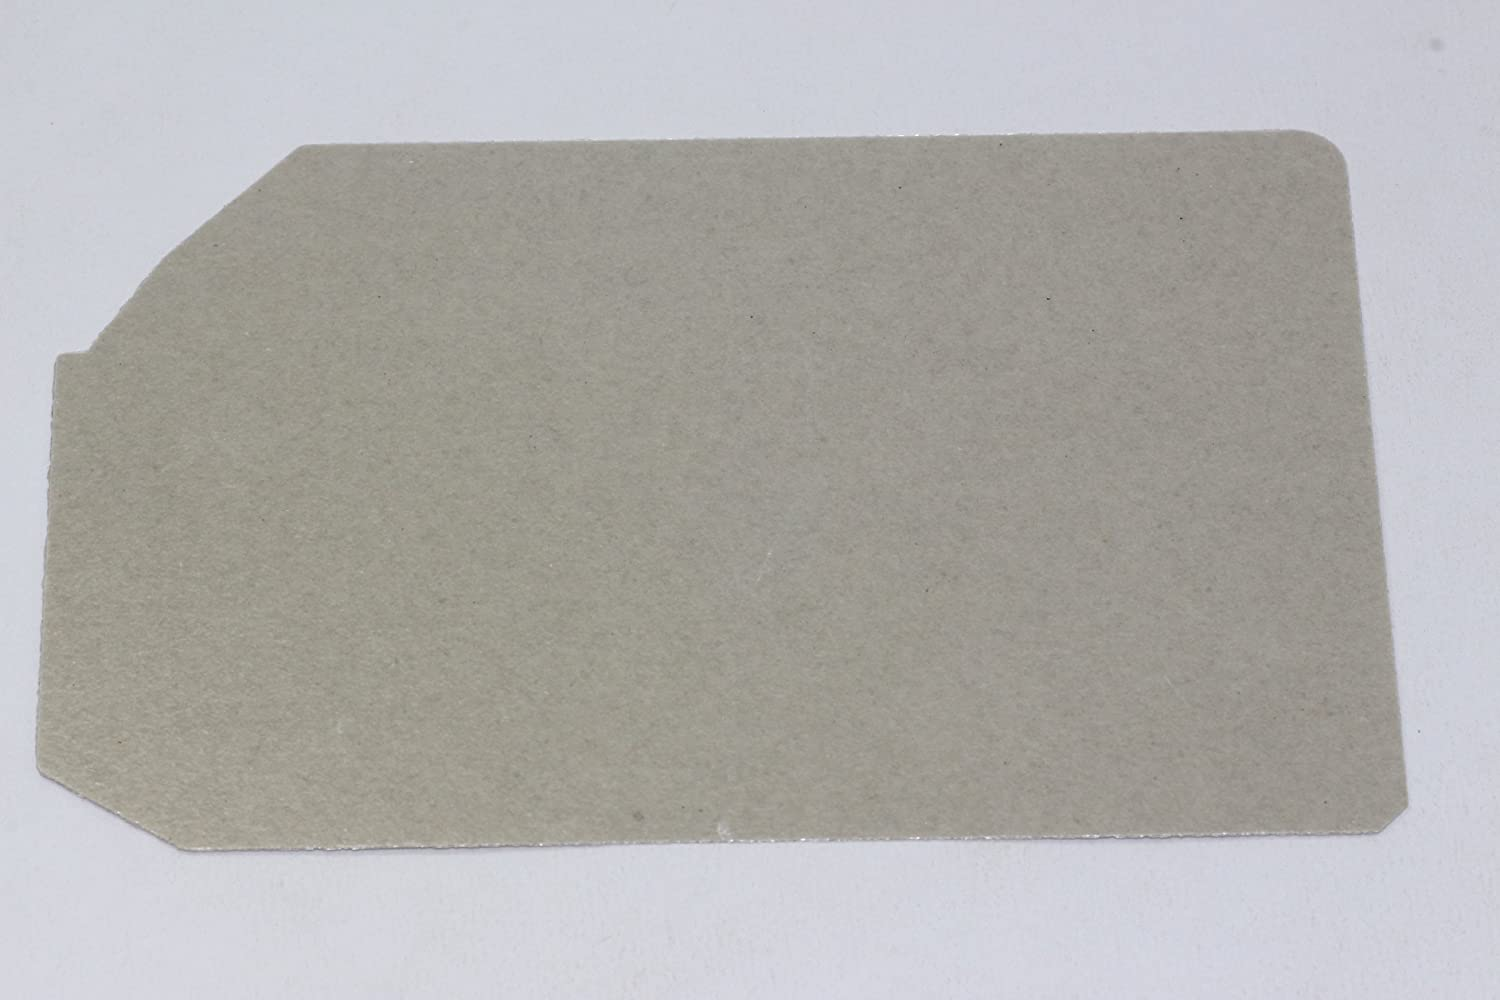 Panasonic Waveguide Cover Mica For Microwave Ovens ...